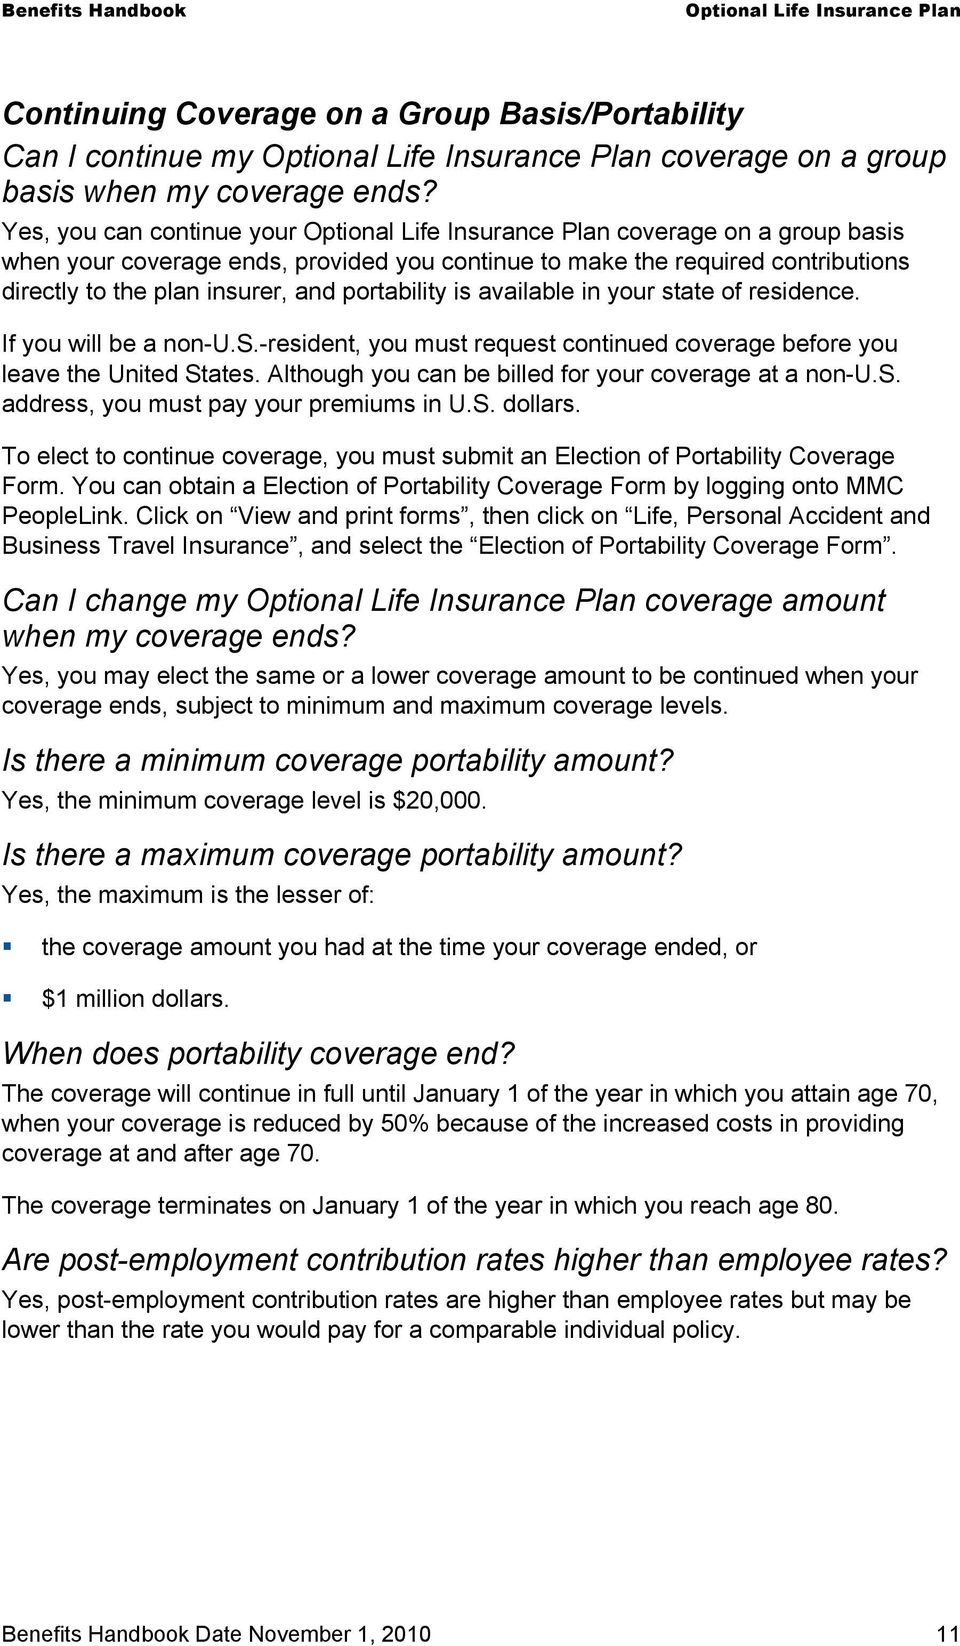 your state of residence. If you will be a non-u.s.-resident, you must request continued coverage before you leave the United States. Although you can be billed for your coverage at a non-u.s. address, you must pay your premiums in U.